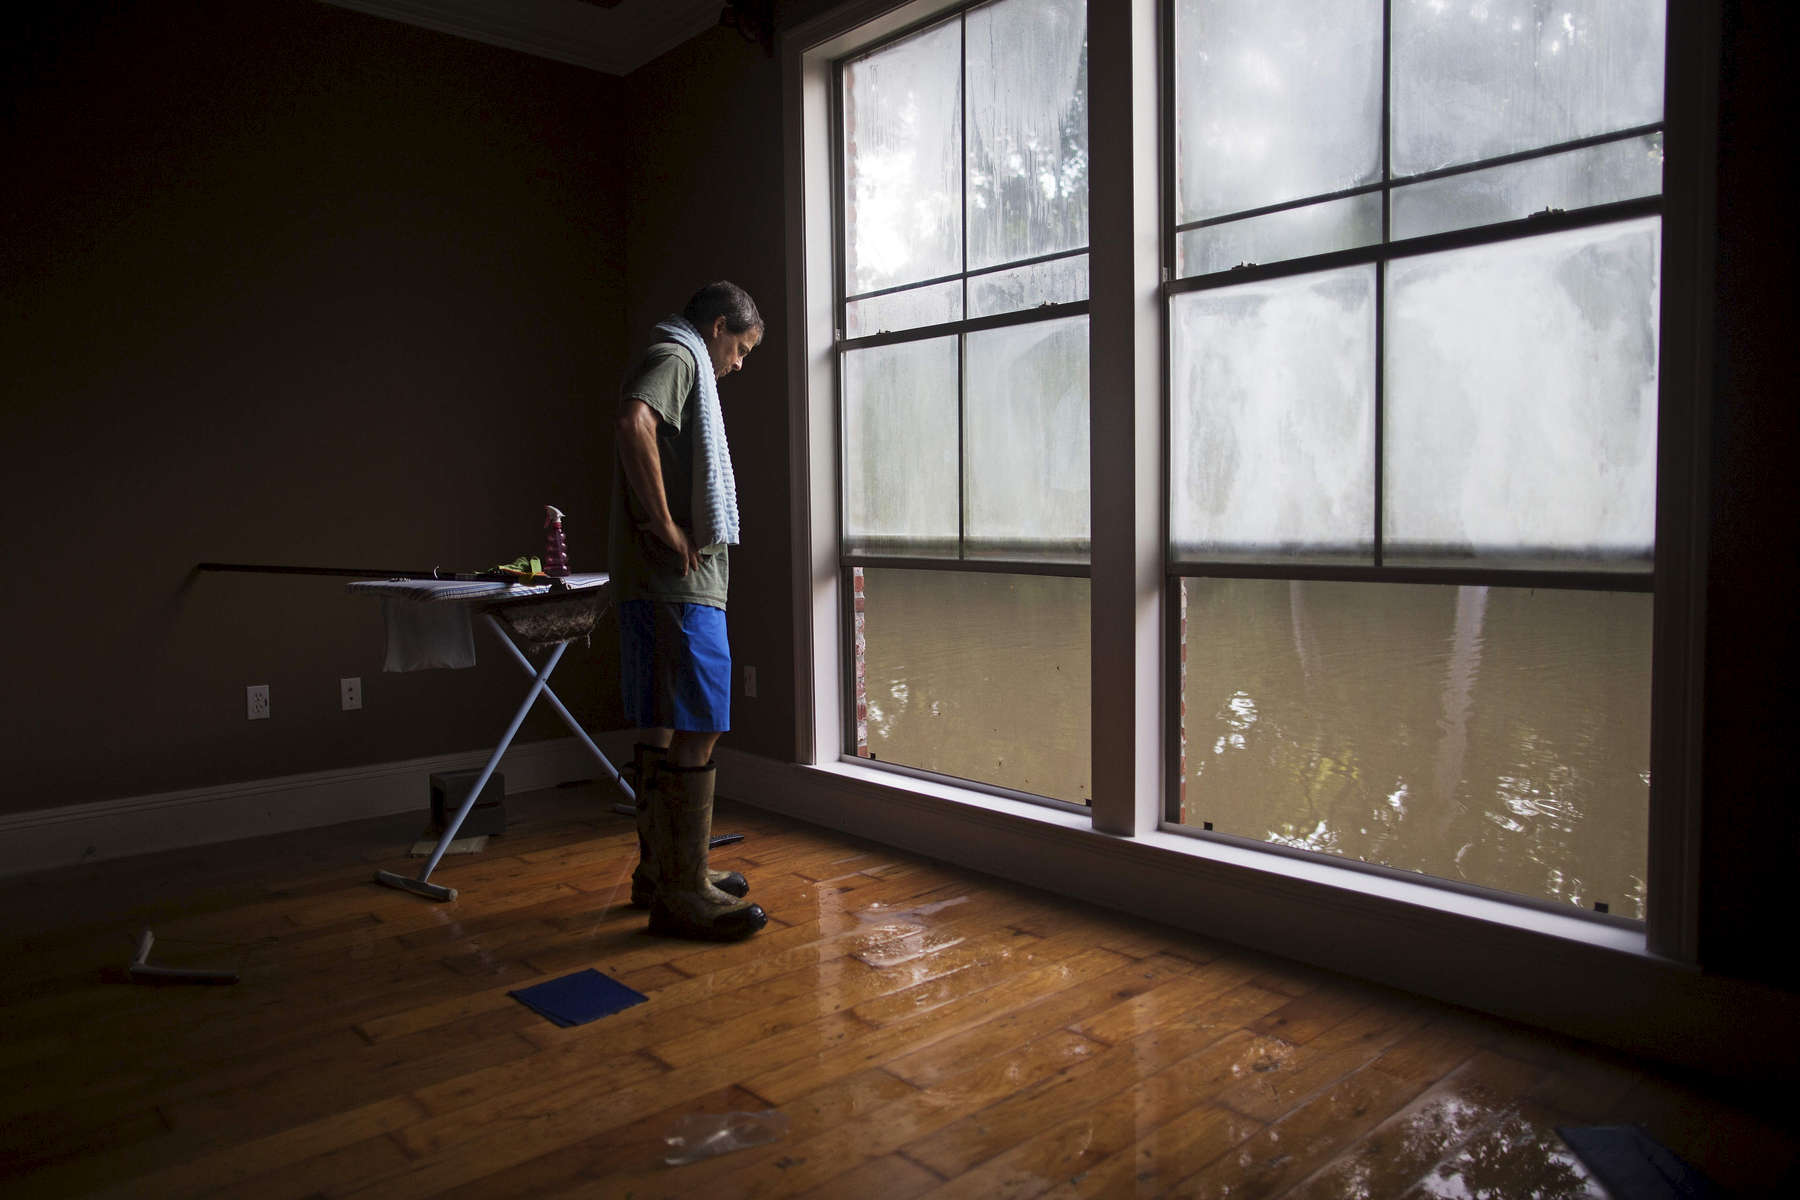 David Key looks at water out of his master bedroom windows in his flooded home in Prairieville, La. USA, Tuesday, Aug. 16, 2016. Key, an insurance adjuster, fled his home as the flood water was rising with his wife and three children and returned Tuesday to assess the damage. Mike Steele, spokesman for the Governor's Office of Homeland Security and Emergency Preparedness, said 102,000 people have registered for federal aid. (AP Photo/Max Becherer)